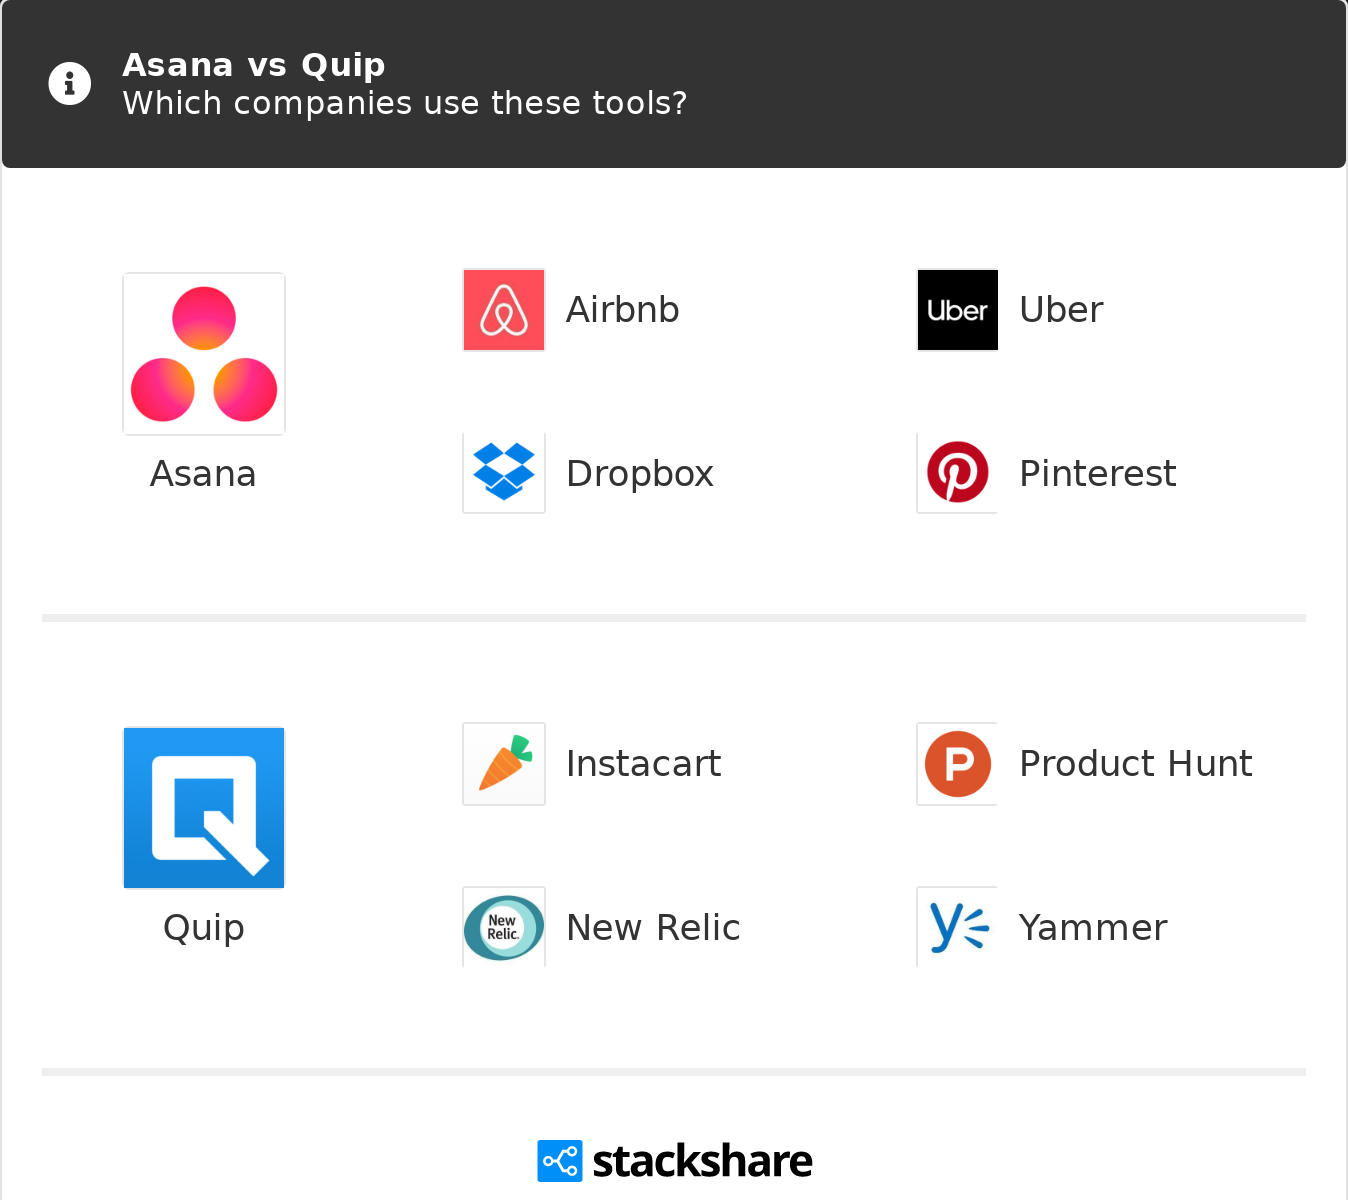 Asana vs Quip | What are the differences?